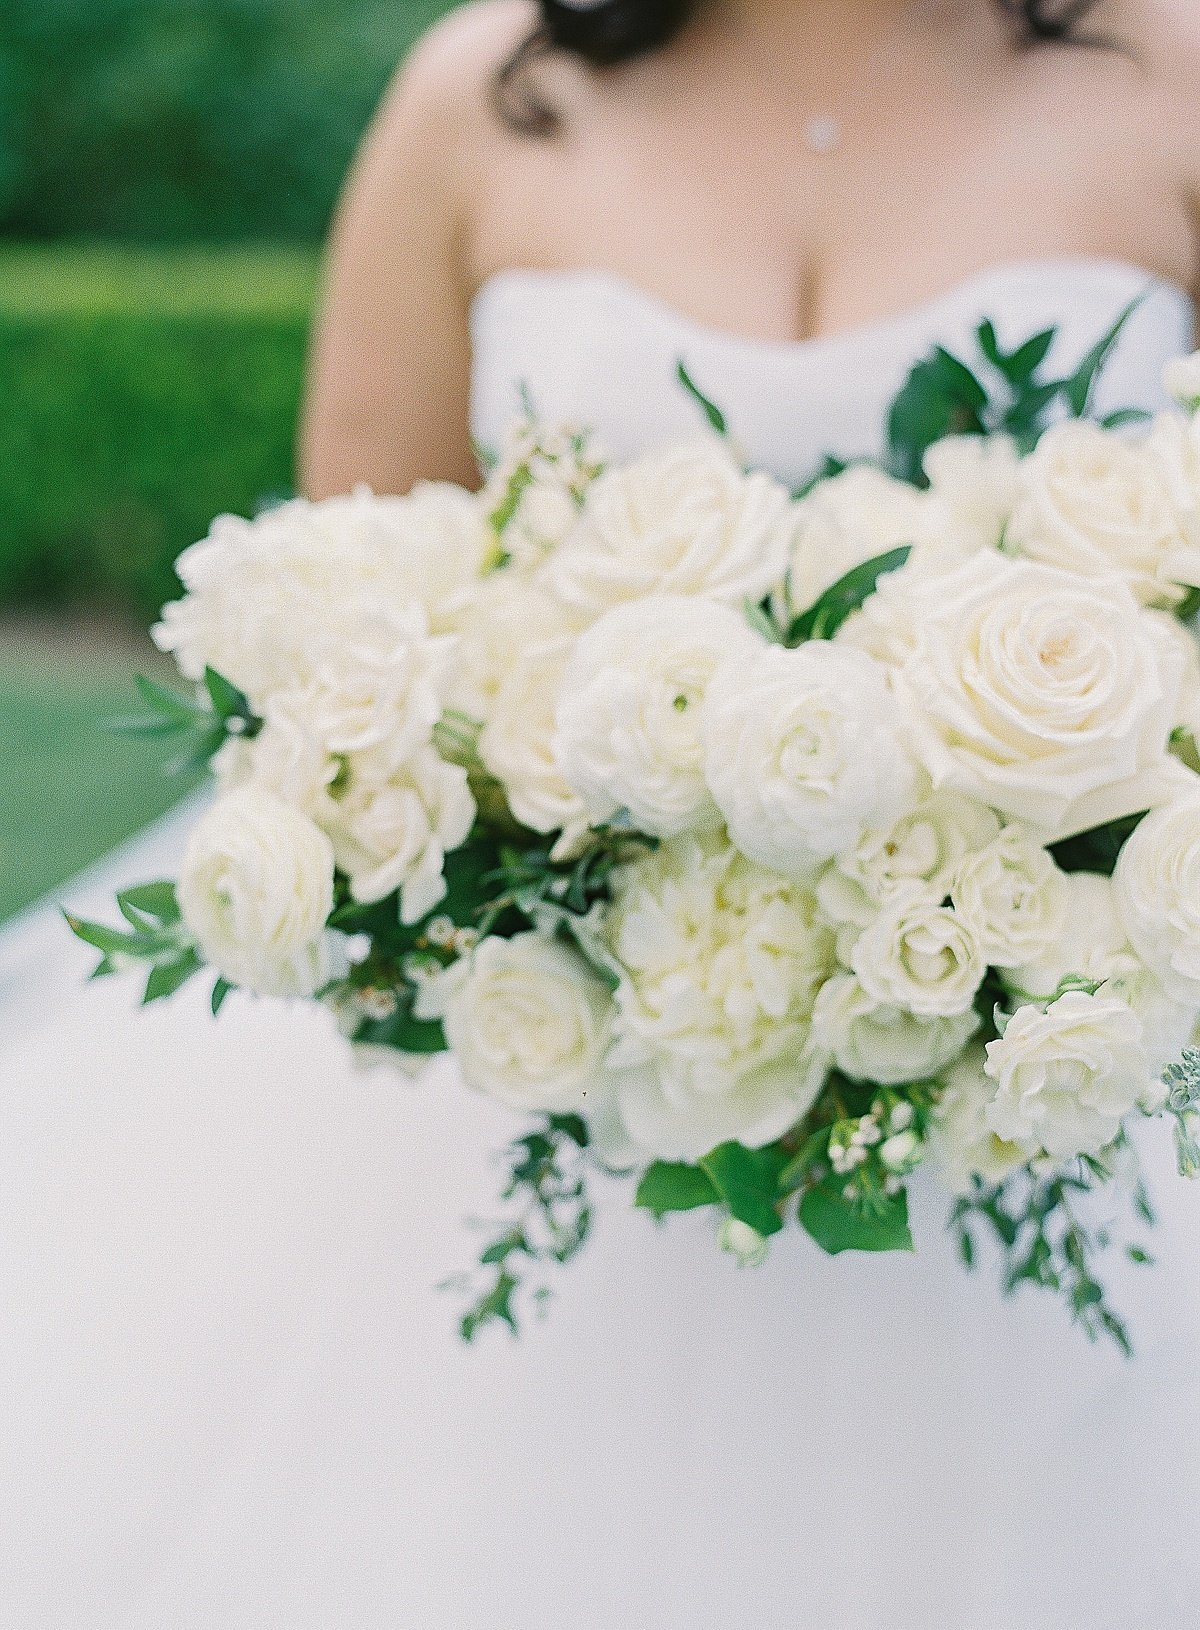 Posh Peony Newhall Mansion Piru Lush White Floral and Greenery Wedding_0016